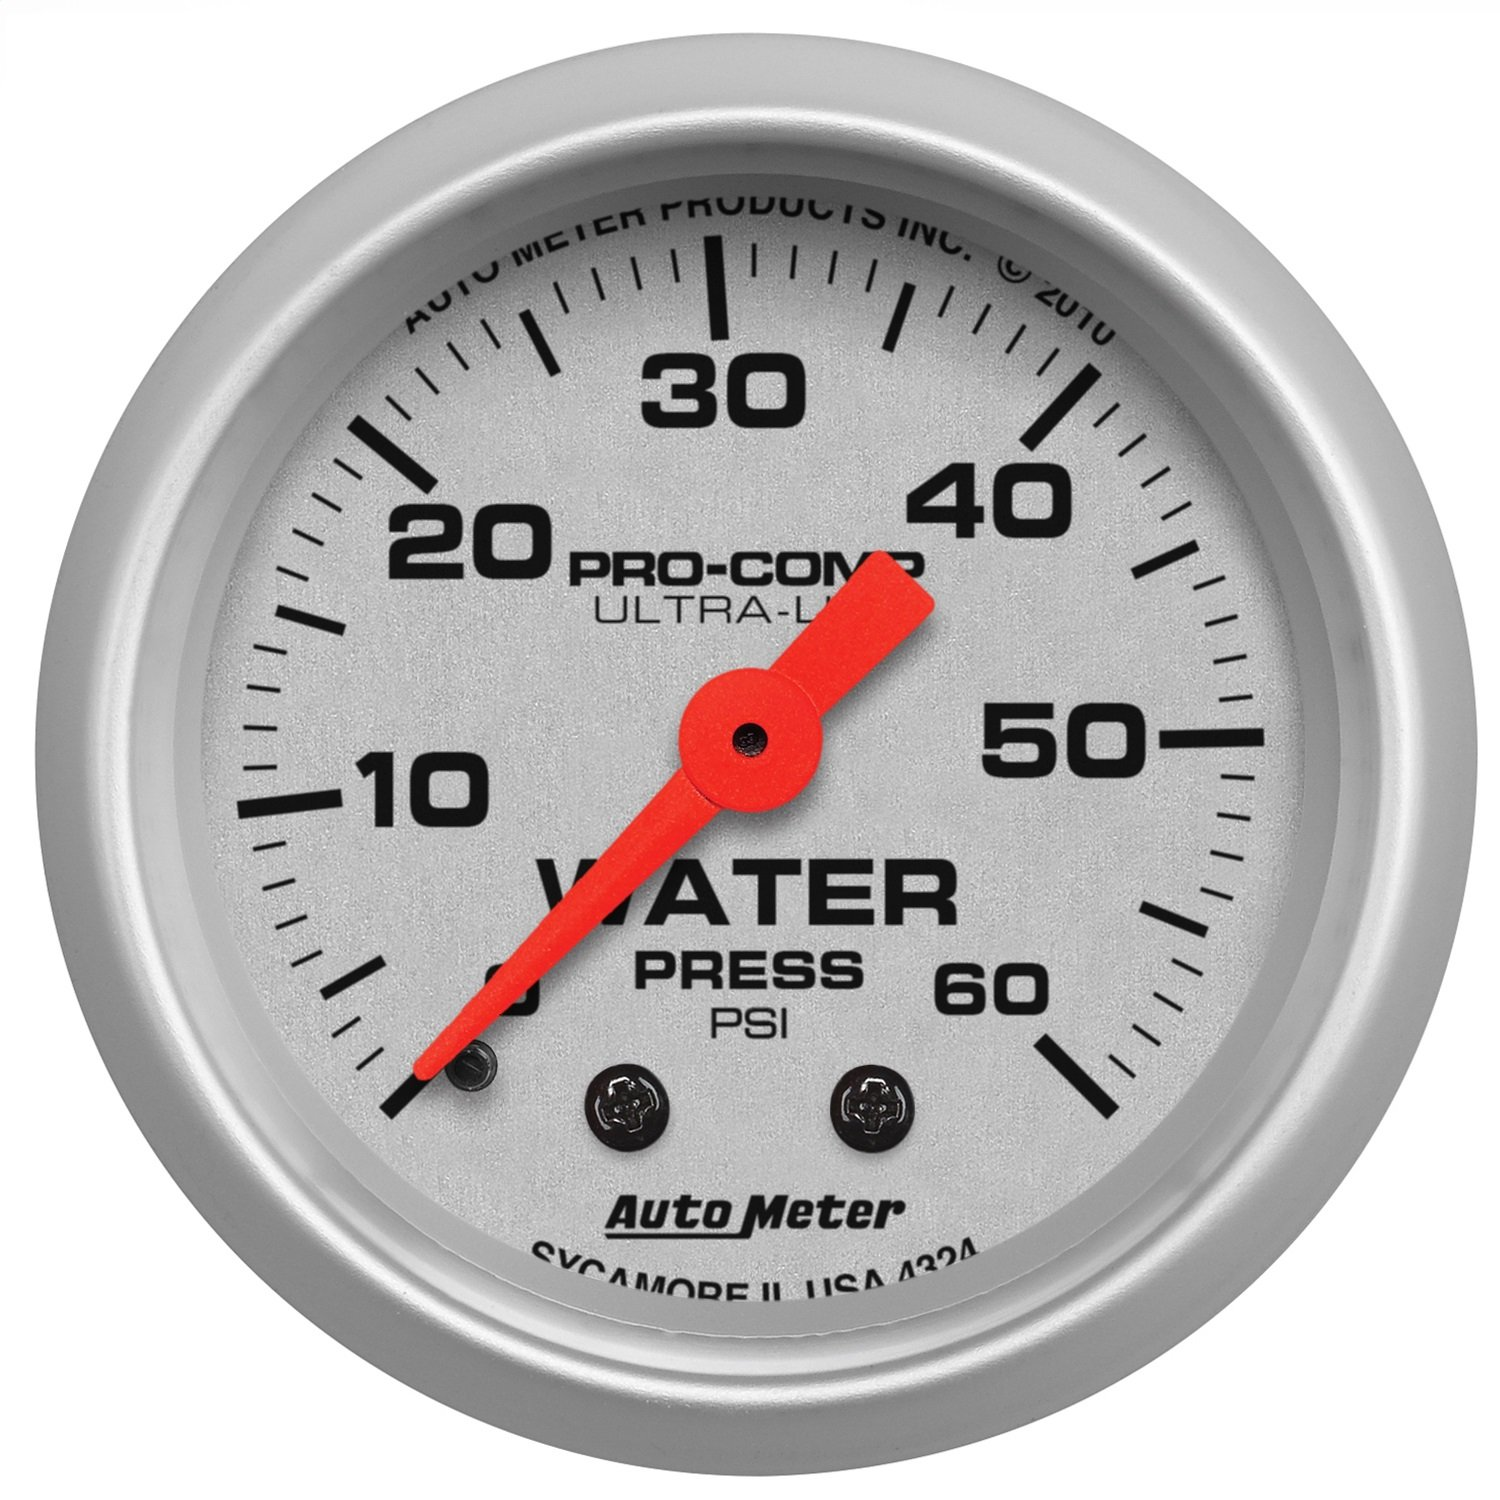 Auto Meter 4324 Ultra-Lite Mechanical Water Pressure Gauge by AUTO METER